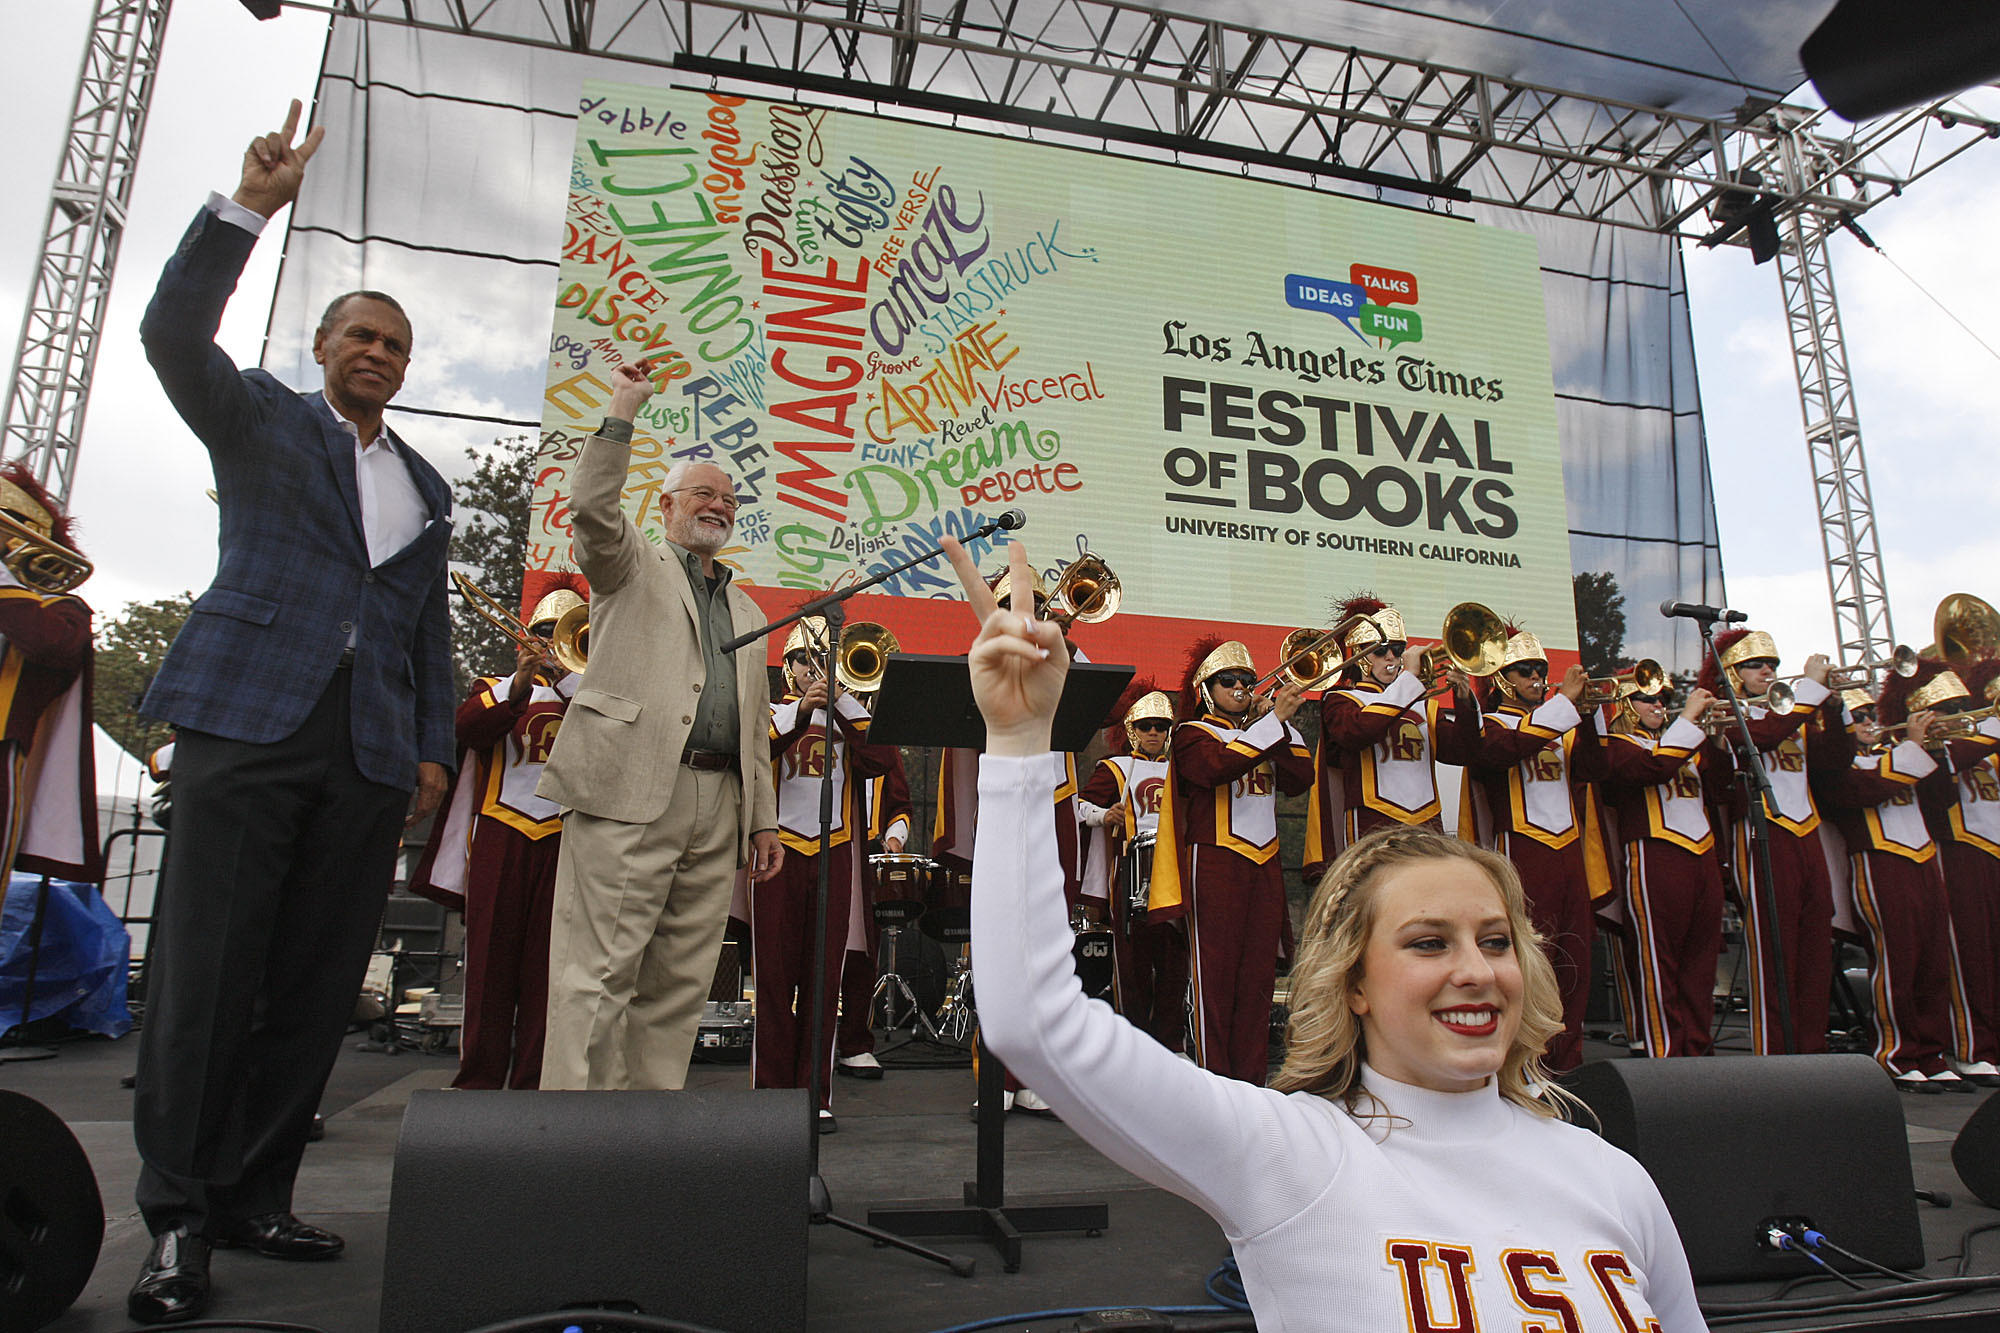 Thomas Sayles of USC, left, and Times Publisher Eddy Hartenstein join the USC band and cheerleaders at the kickoff of the L.A. Times Festival of Books on Saturday on the USC campus.